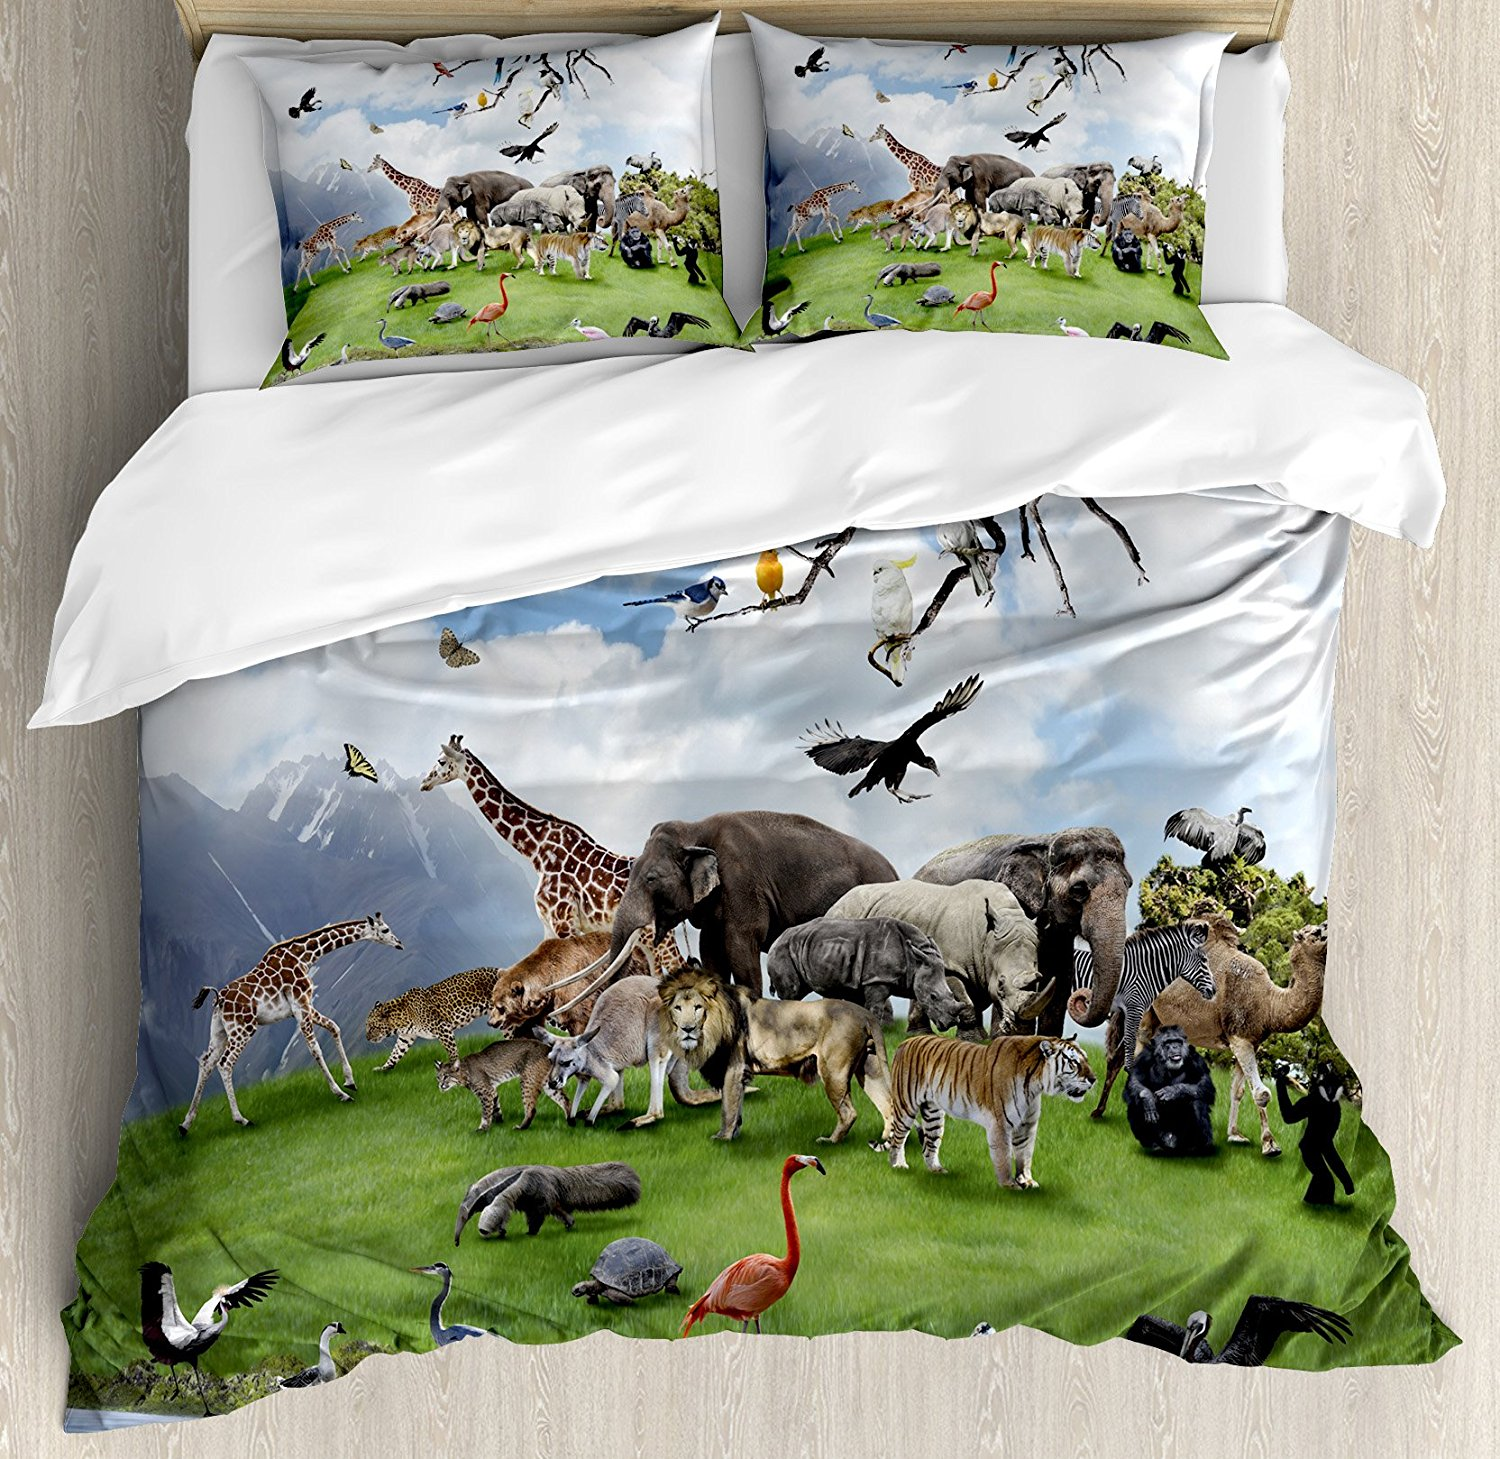 Wildlife Decor Duvet Cover Set Tropic Animal Collage in the Valley with Lion Parrot Swans Elephants Flamingos Bedding Set MultiWildlife Decor Duvet Cover Set Tropic Animal Collage in the Valley with Lion Parrot Swans Elephants Flamingos Bedding Set Multi